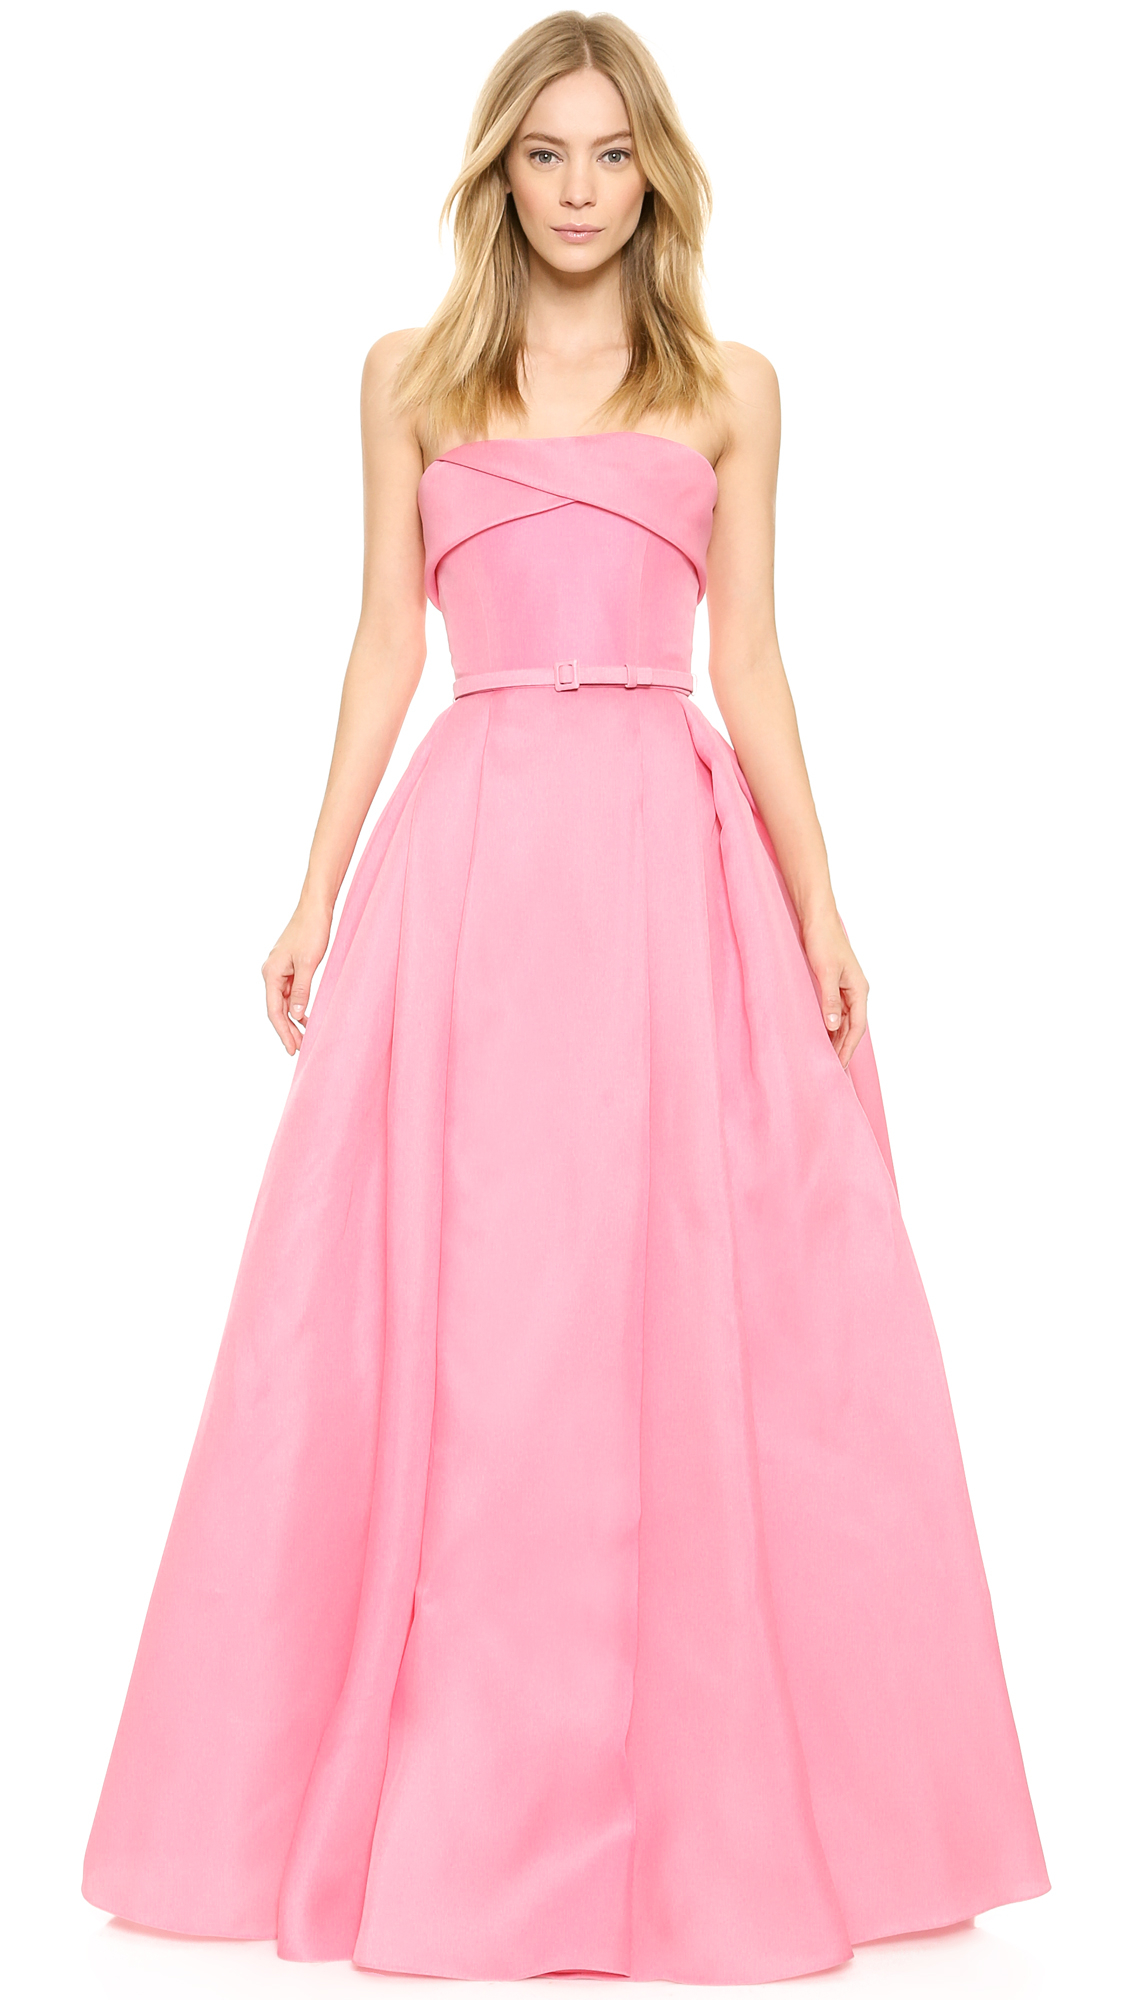 8e8a17b886 Reem Acra Pleated Ball Gown With Belt - Pink in Pink - Lyst